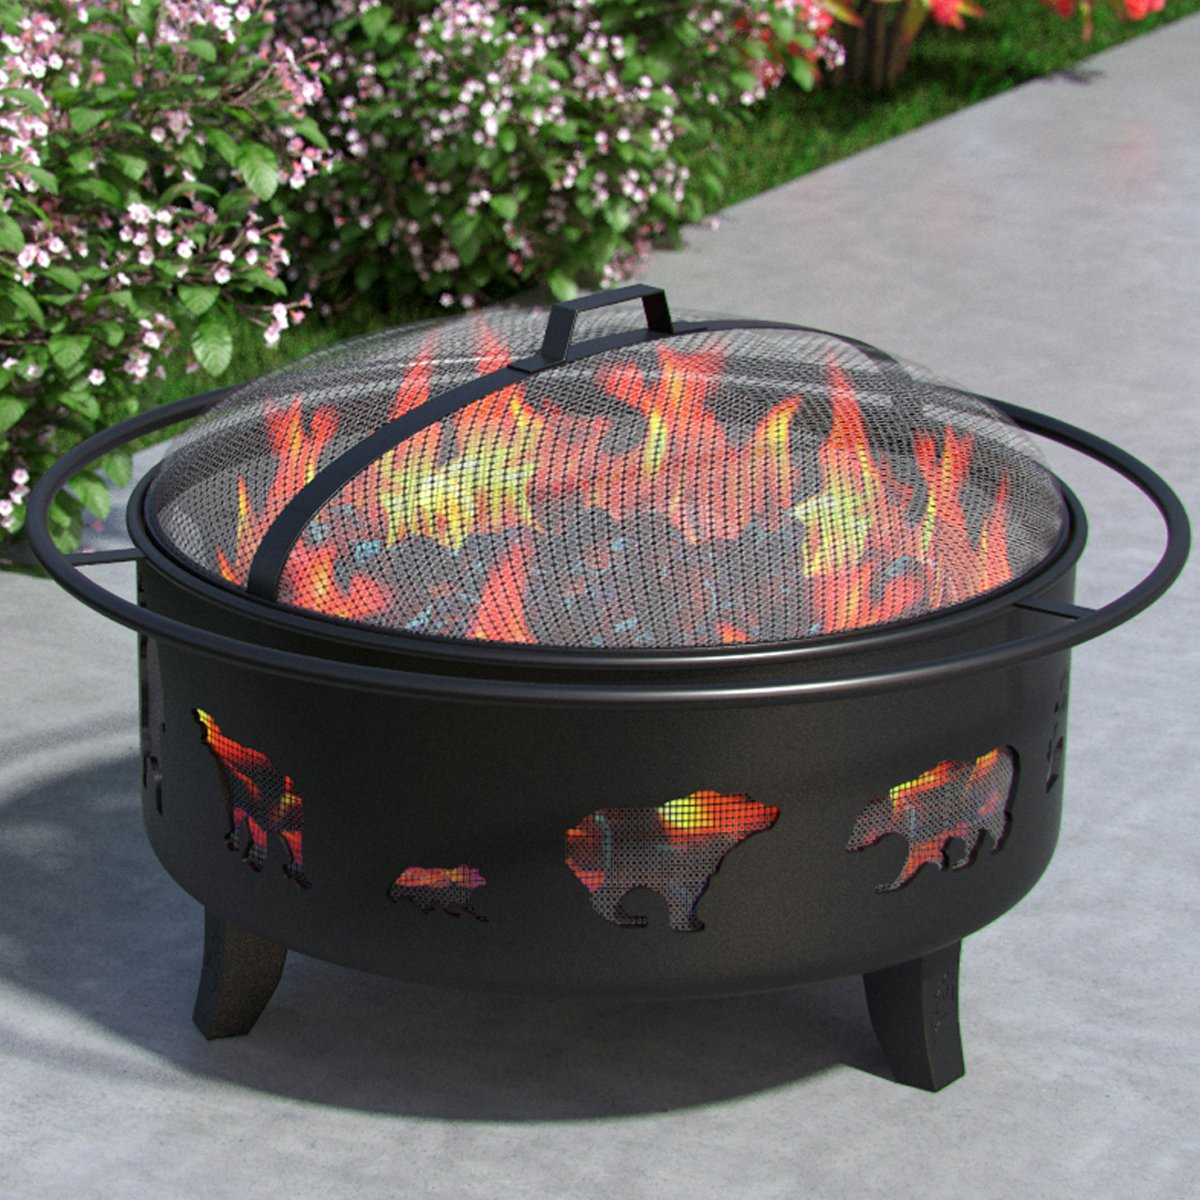 Wild Bear 35'' Portable Outdoor Fireplace Fire Pit Ring for Backyard Patio Fire, RV, Patio Heater, Stove, Camping, Bonfire, Picnic, Firebowl No Propane, Includes Safety Mesh Cover, Poker Stick by Regal Flame